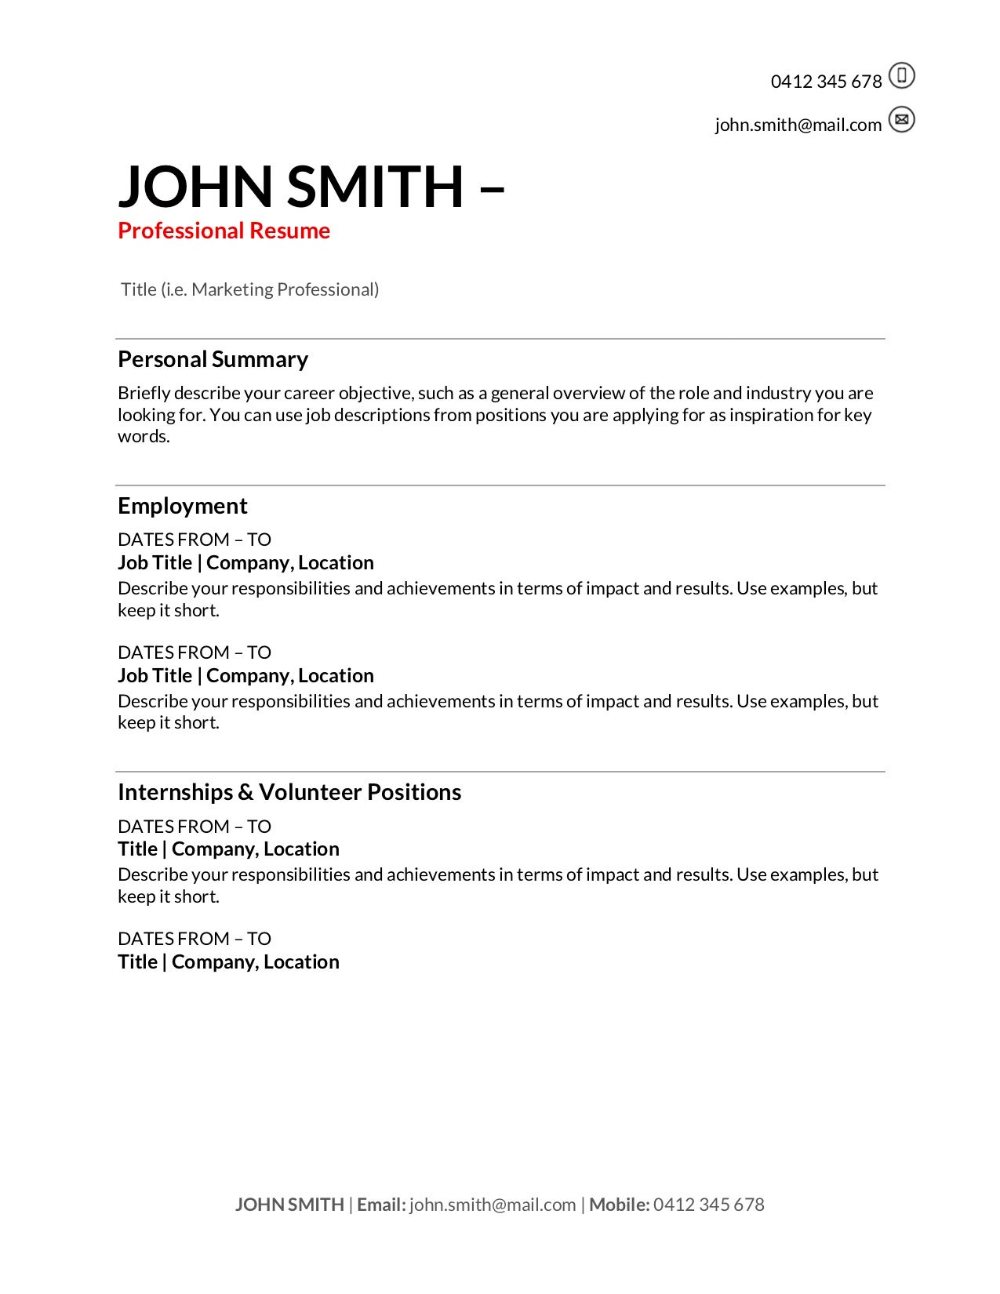 Resume Templates Samples (4) PROFESSIONAL TEMPLATES in